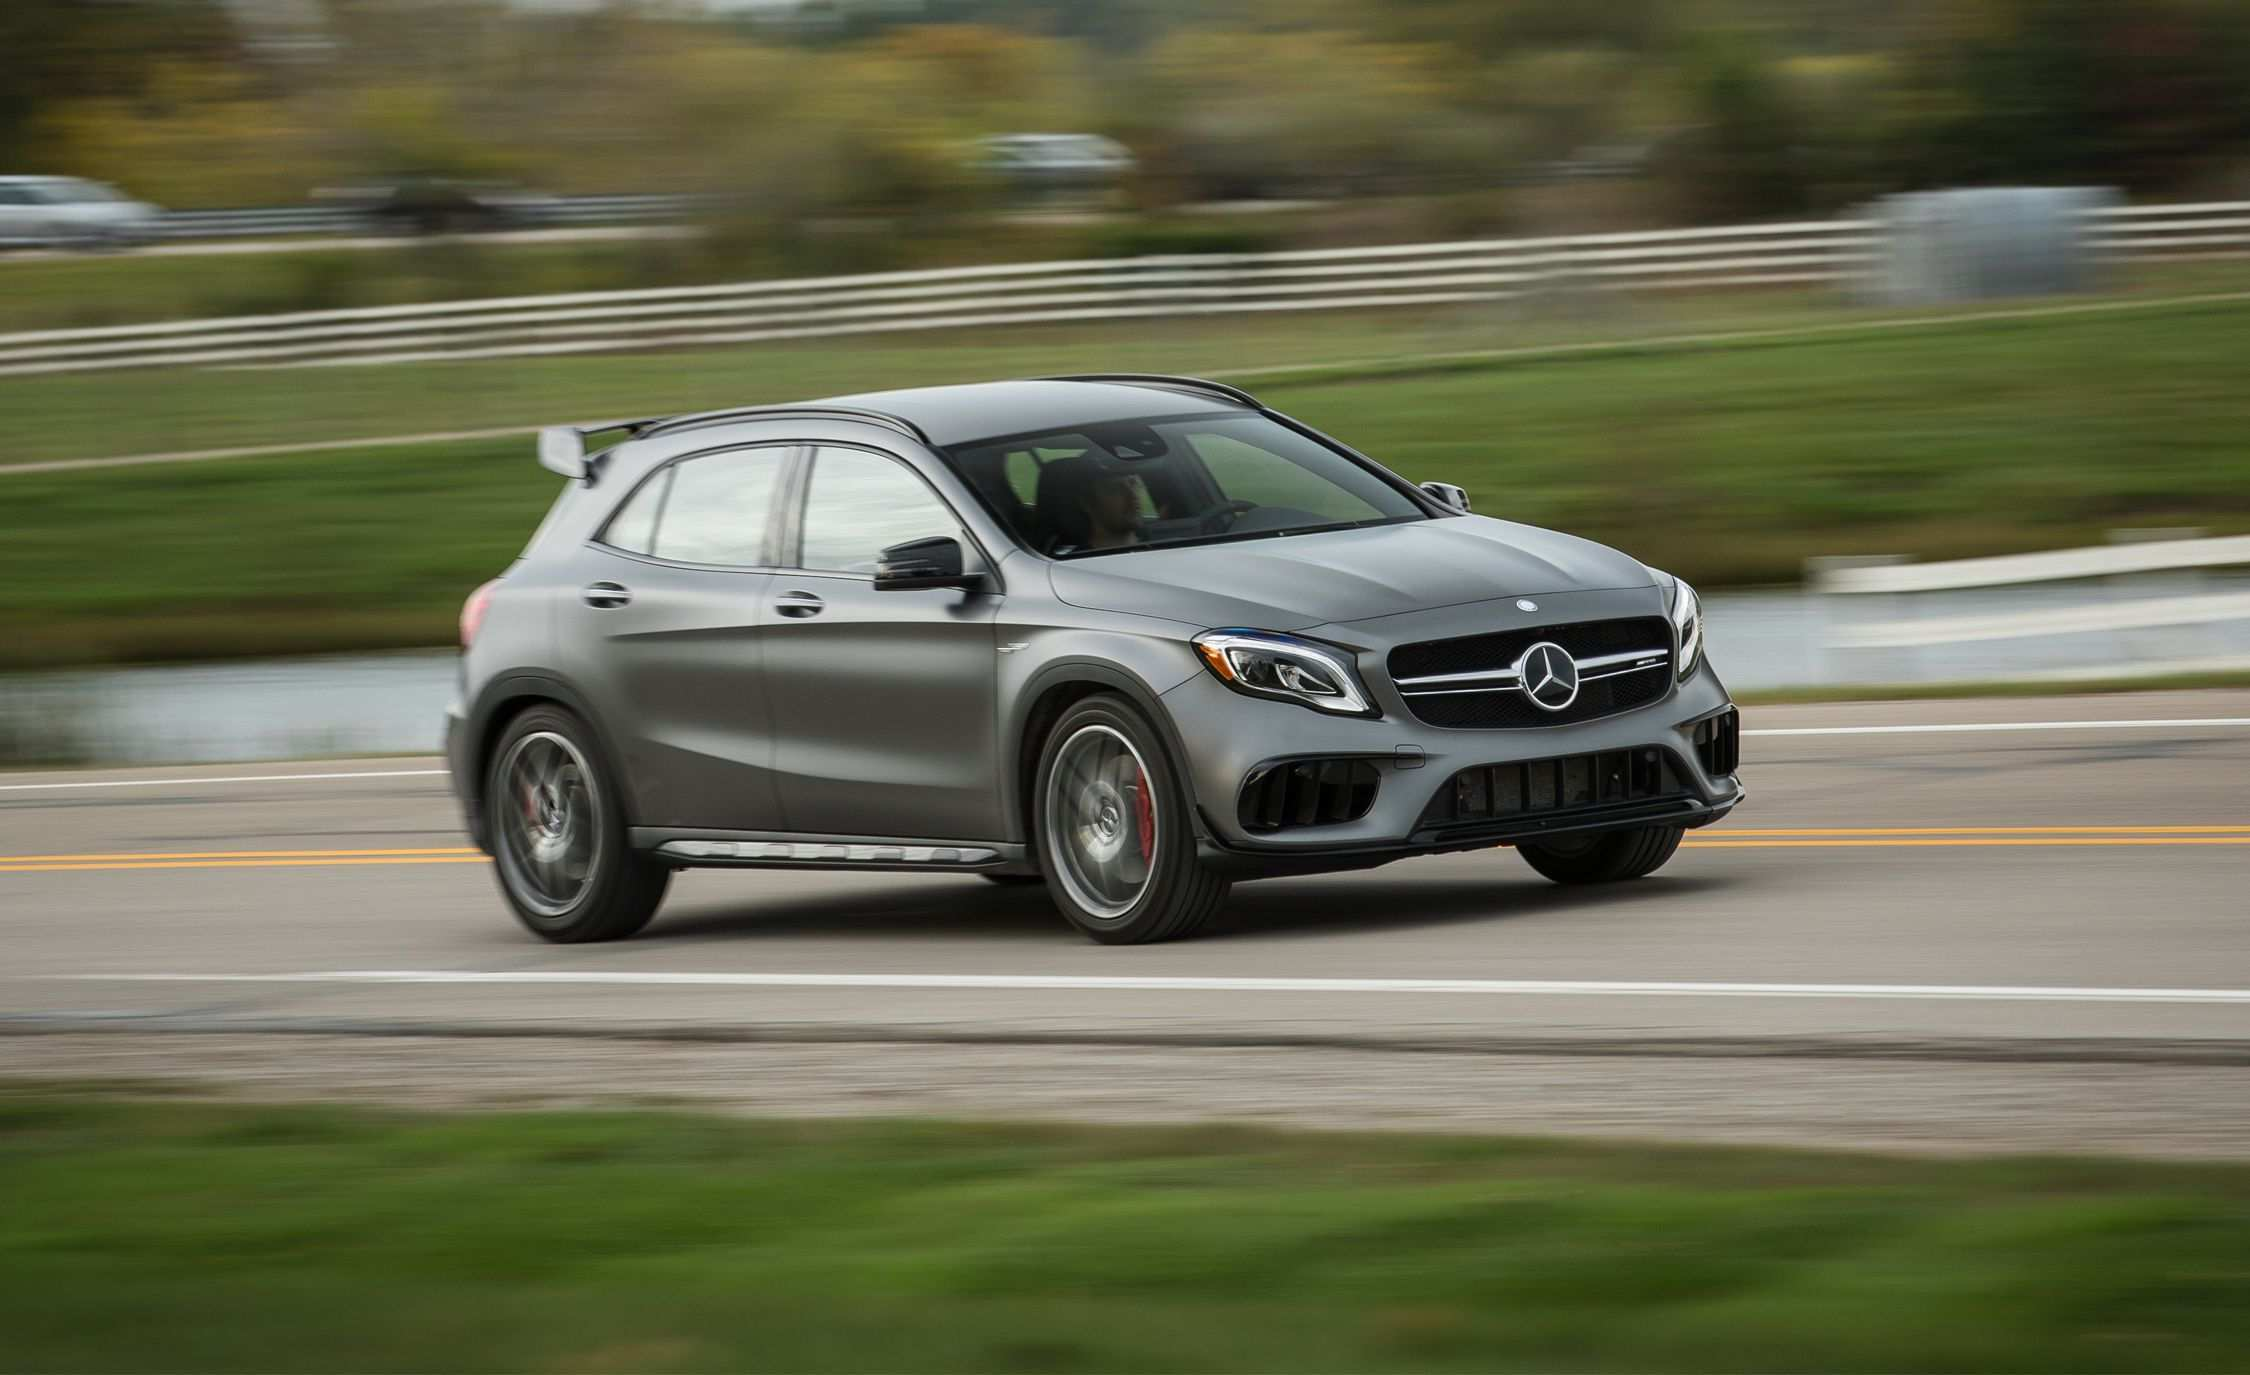 83 Great New 2019 Mercedes Ute Review And Specs Review for New 2019 Mercedes Ute Review And Specs